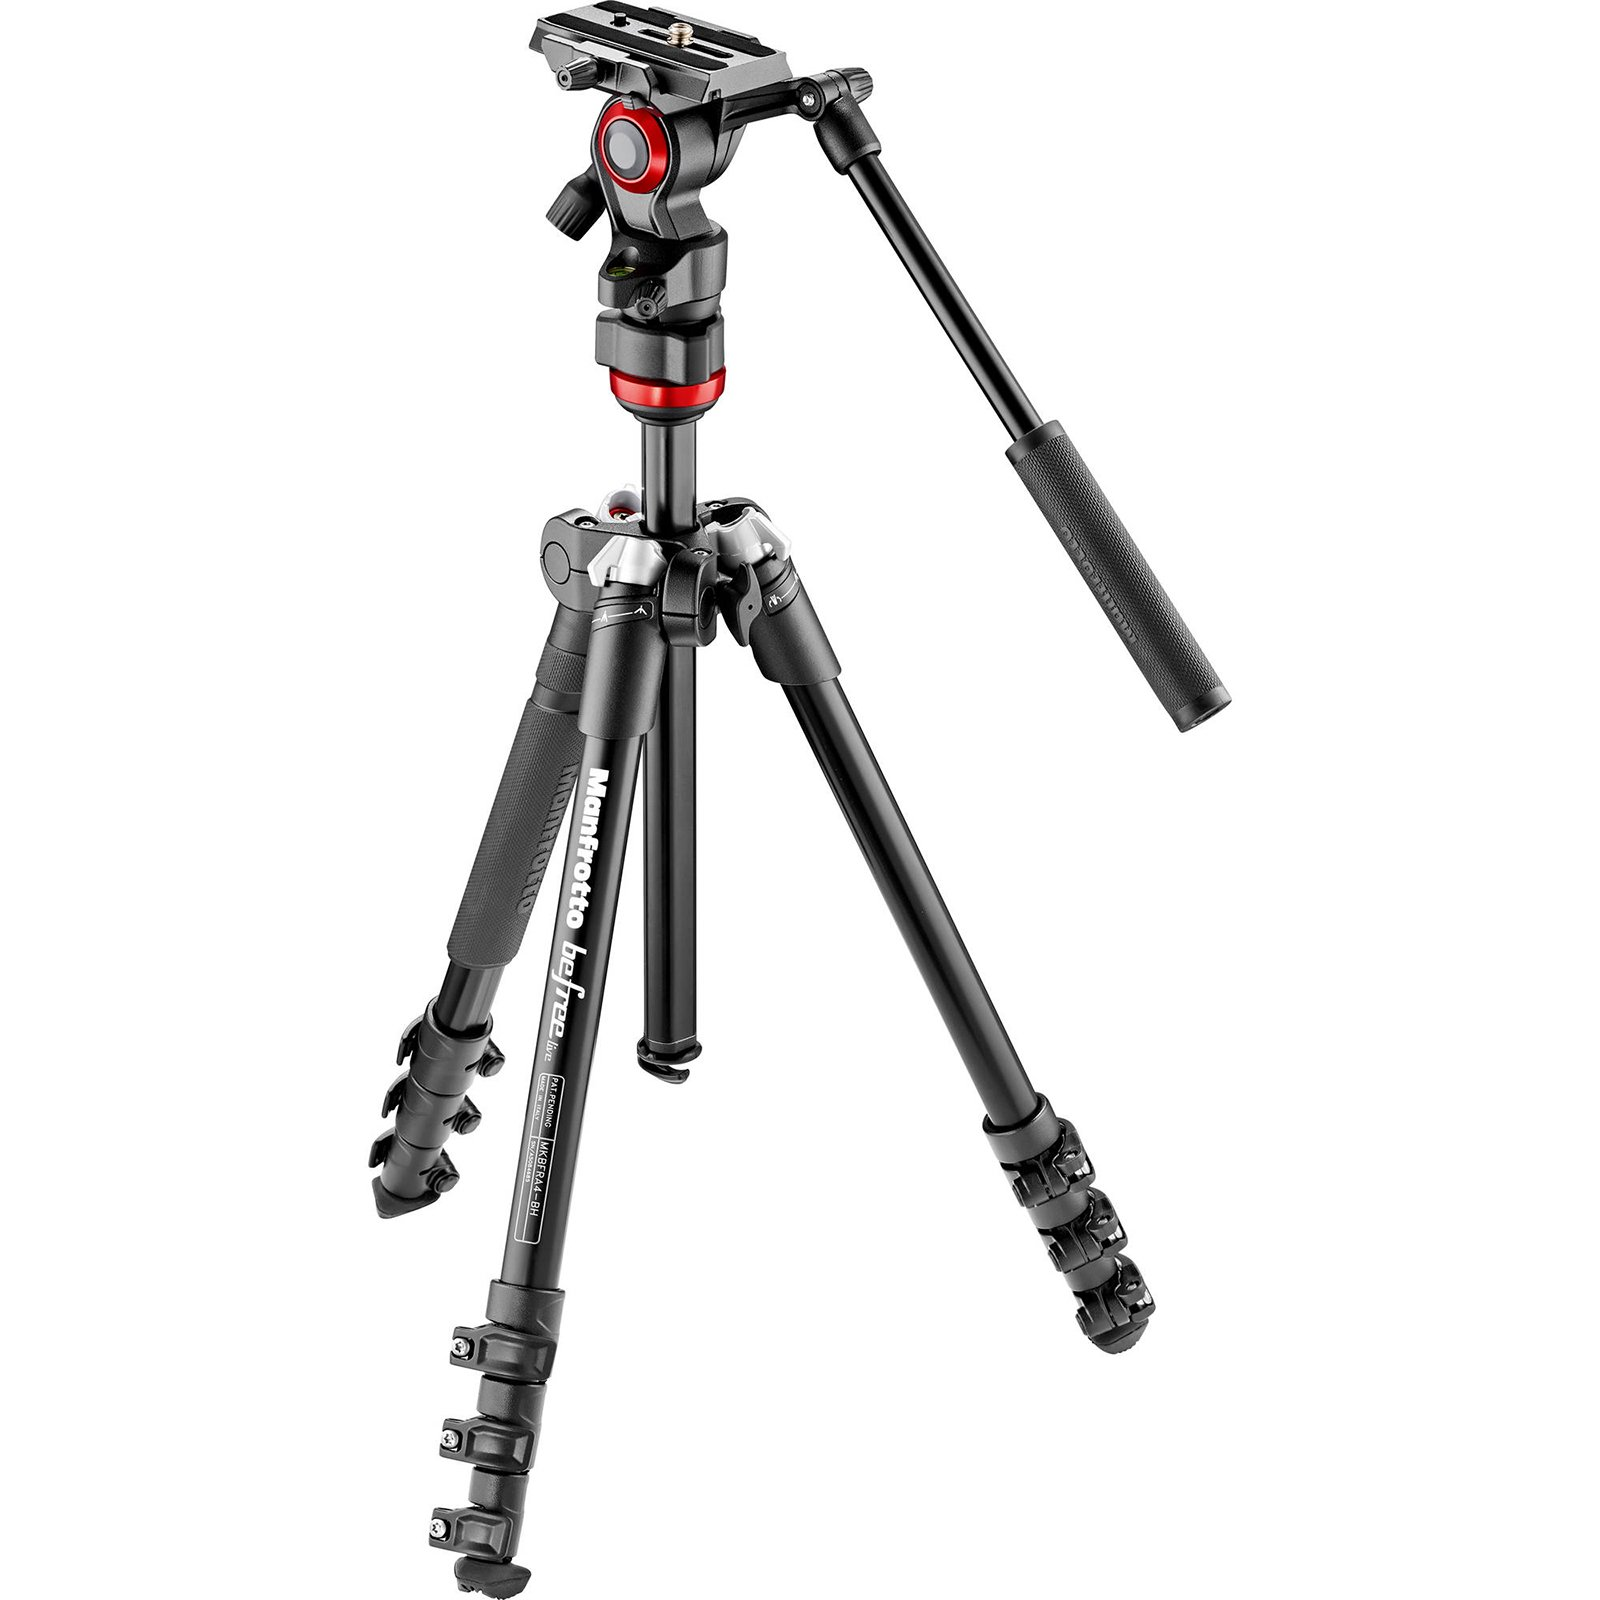 Manfrotto MVKBFR-LIVEUS lightweight, travel friendly Be Free Fluid Video Kit, Black by Manfrotto